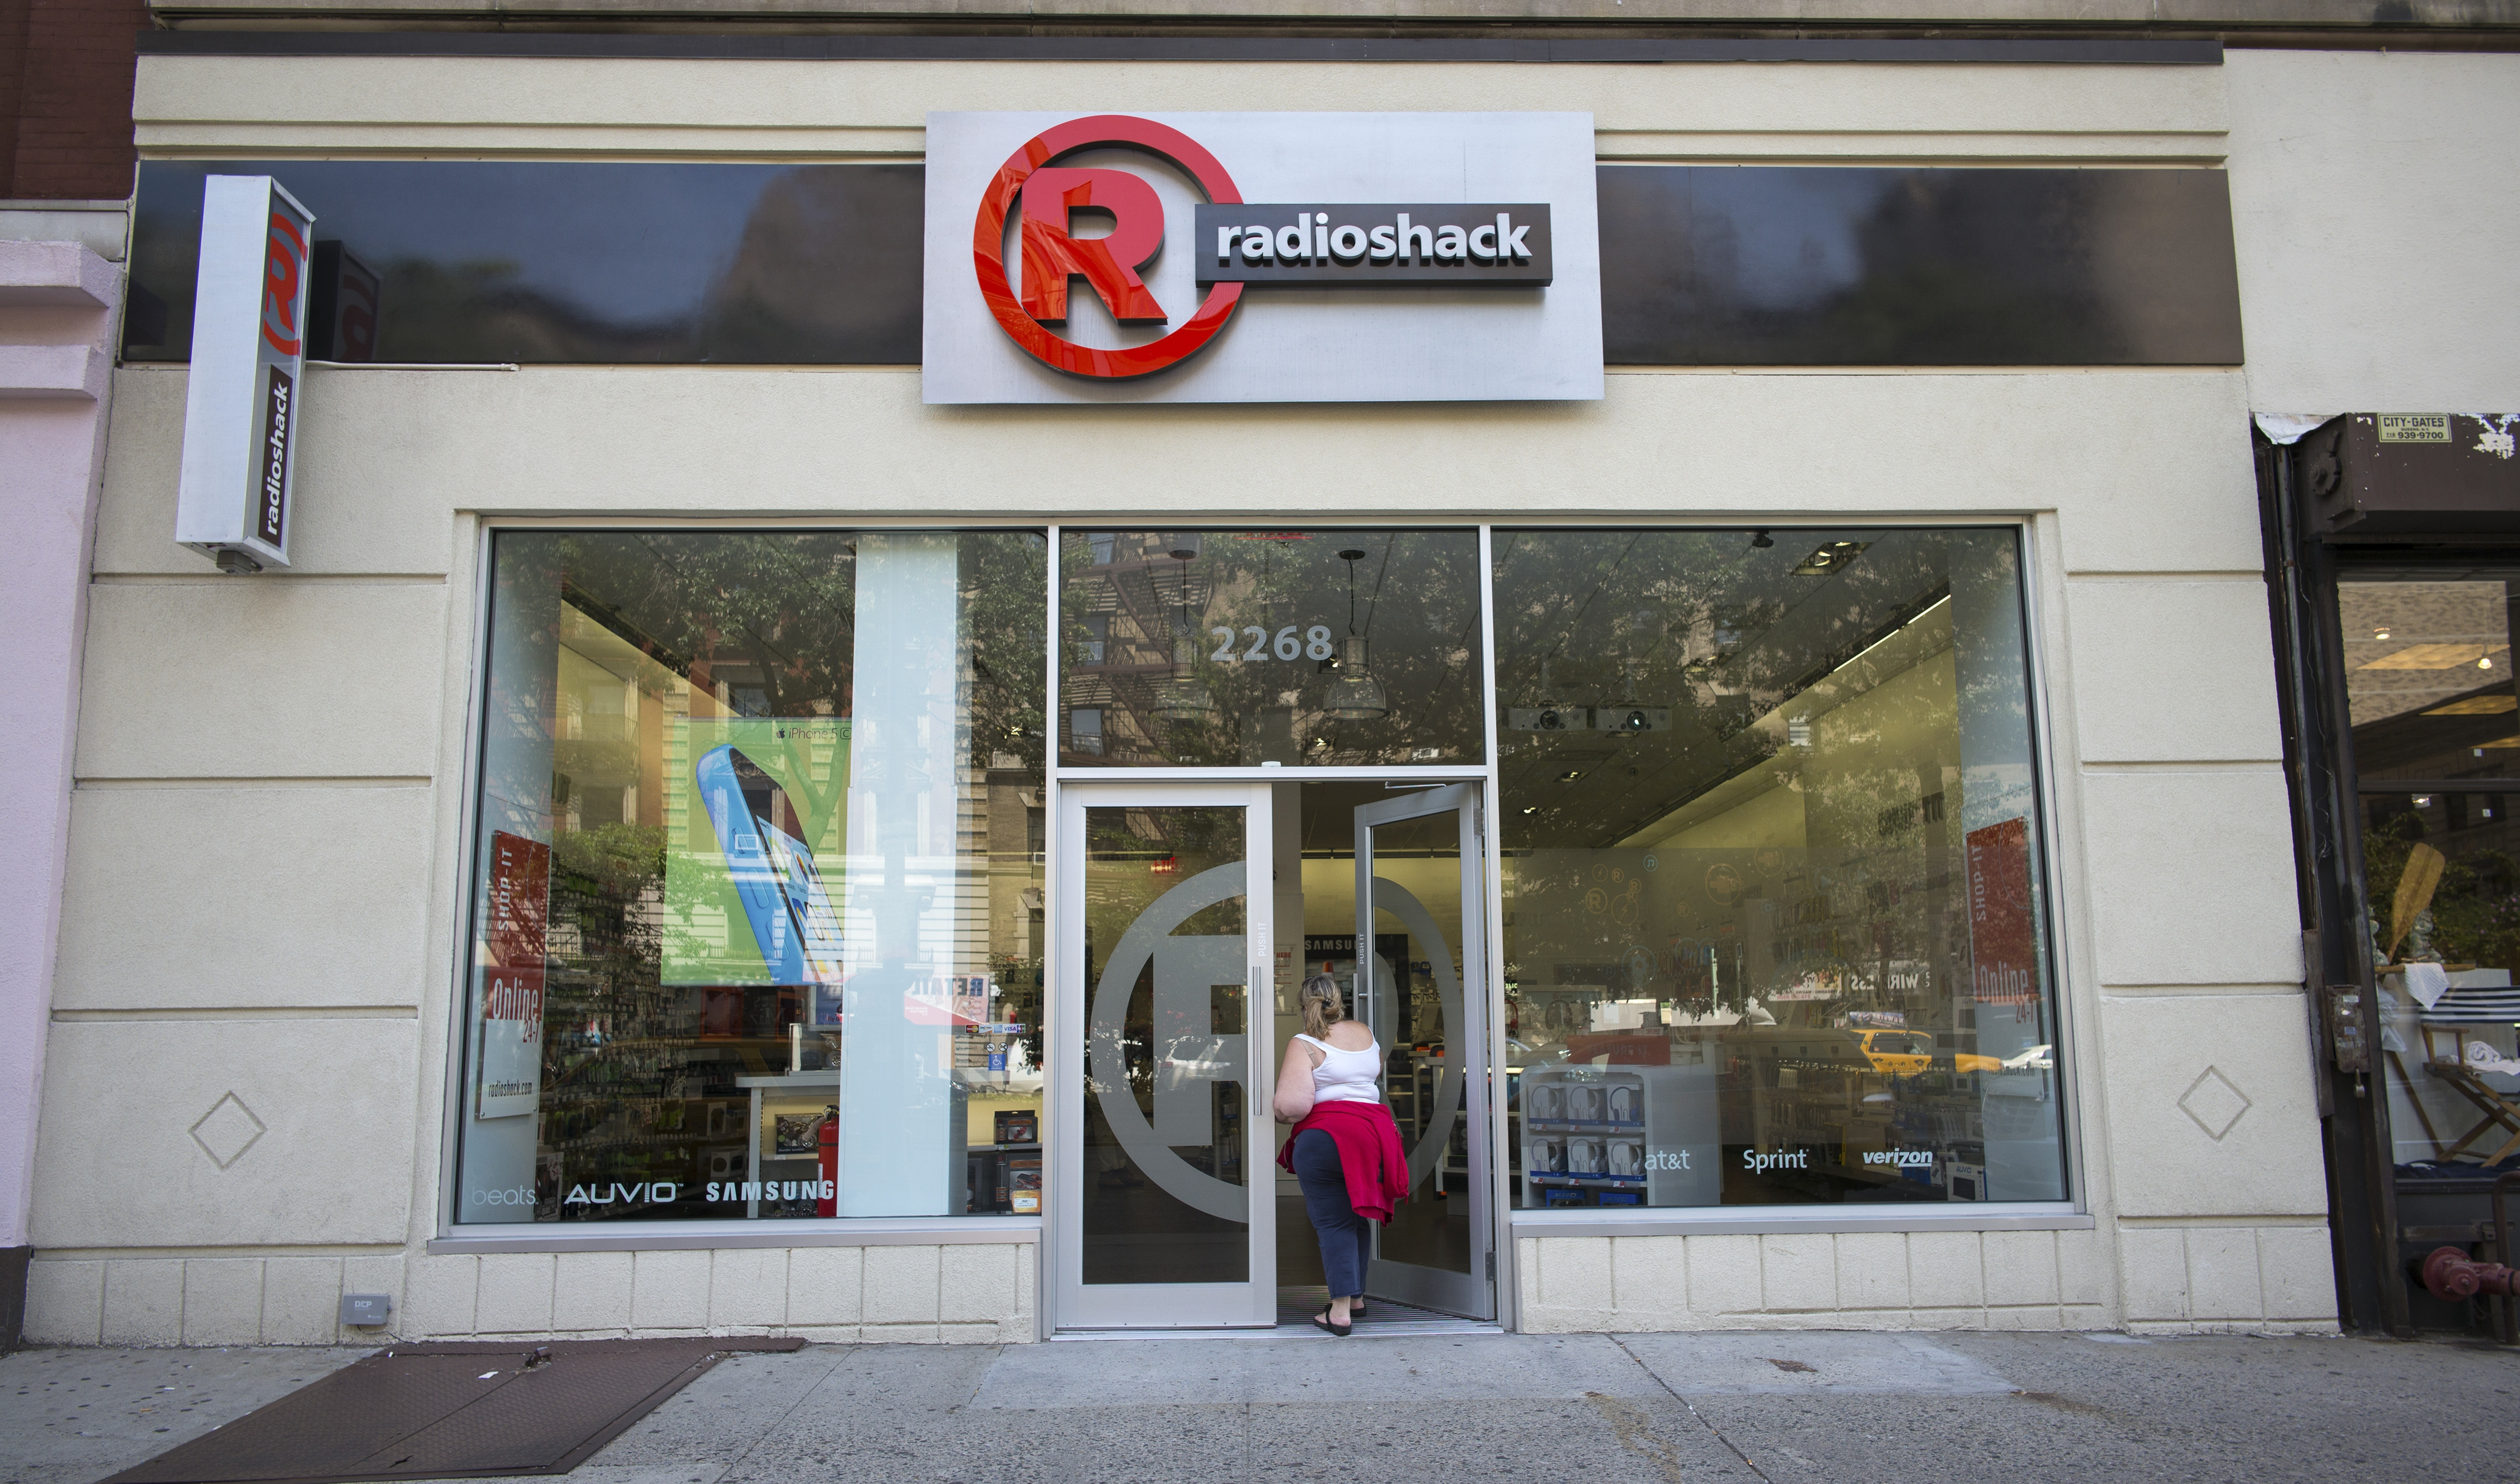 RadioShack flourished when consumers fixed or tinkered with their own electronics and gadgets, but now the appetite for those kinds of parts is a fraction of what it once was.